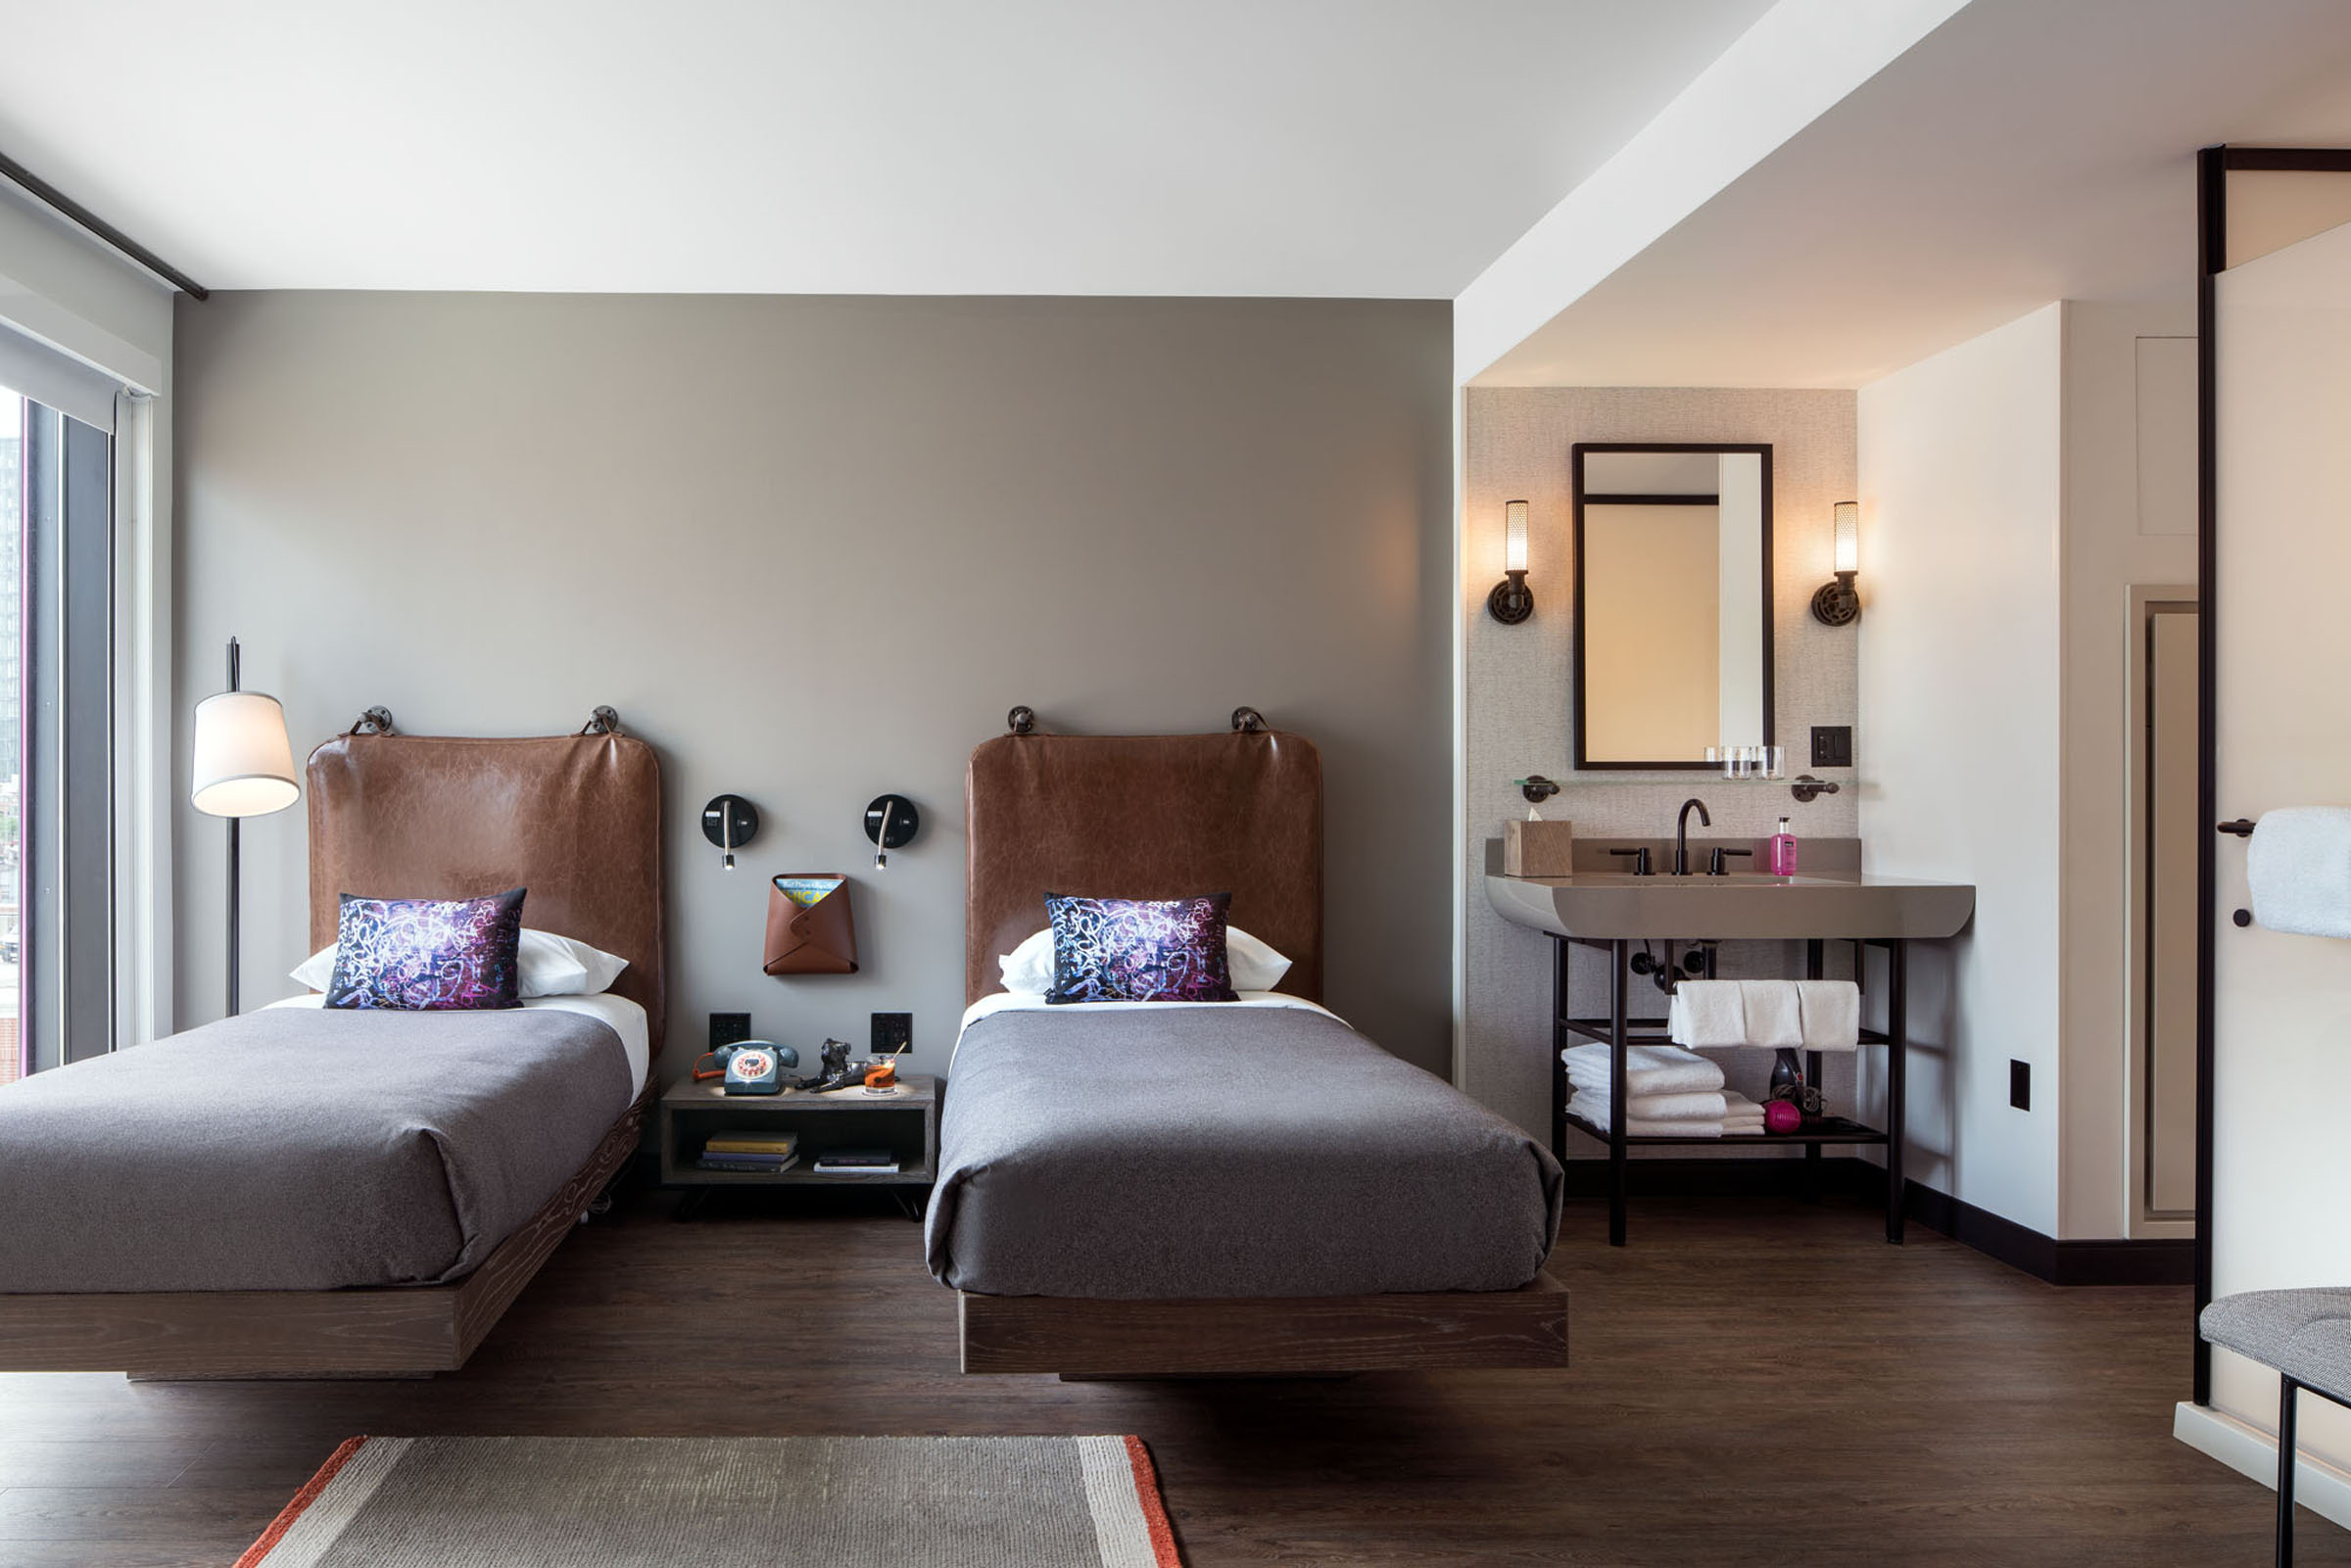 OX_CHIOX_Guestroom_Two_Twin_Beds_Propped_Nightstandcopy